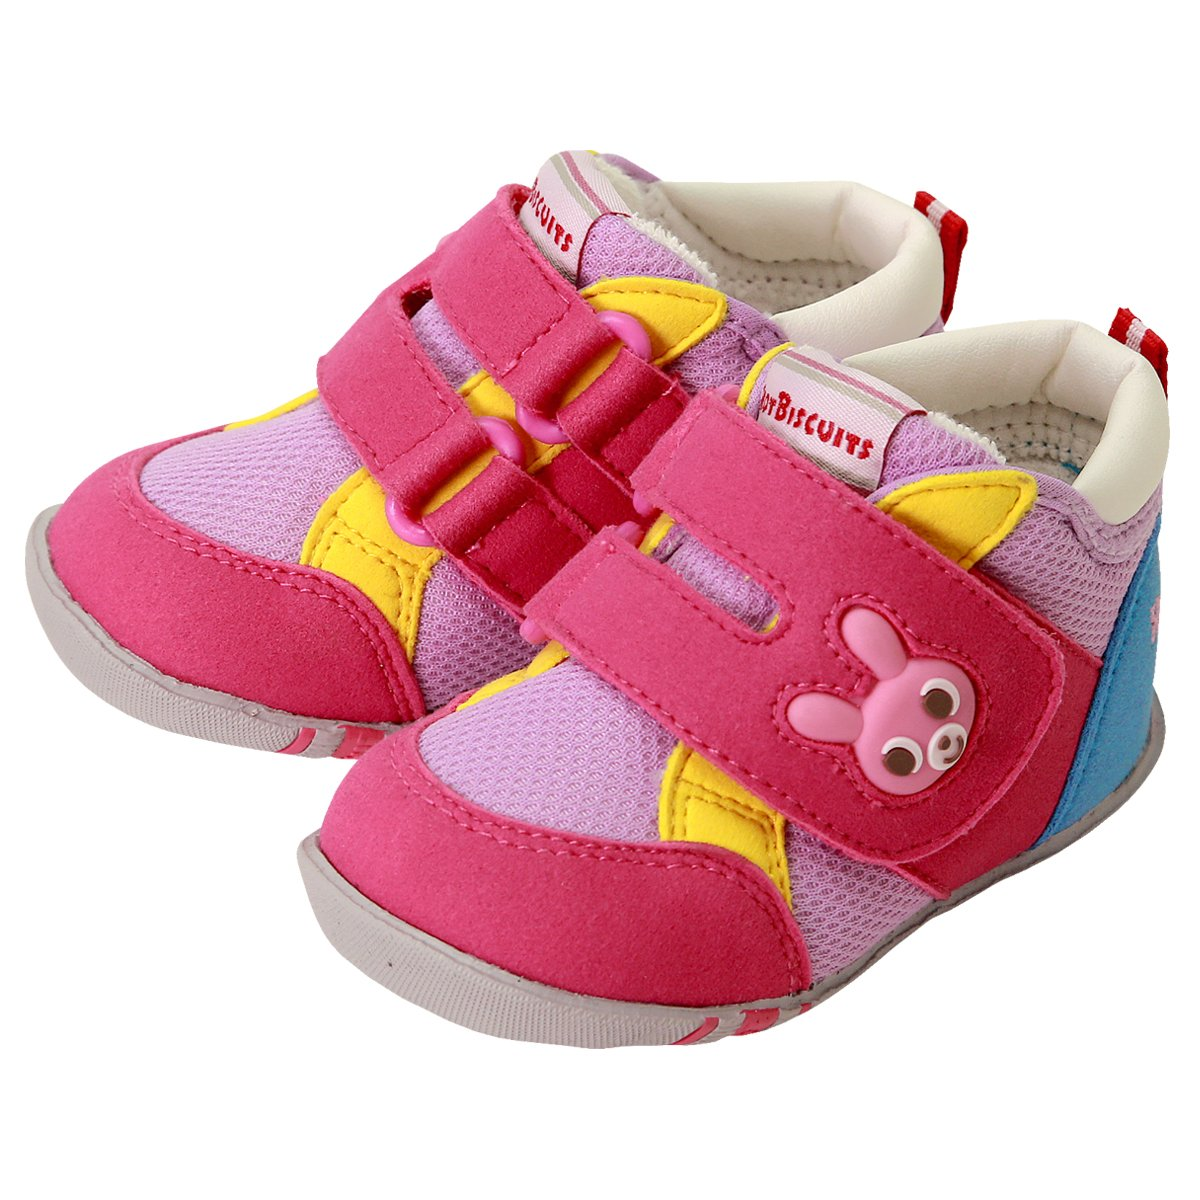 1748f737aaa0c Amazon.com: Mikihouse Hot Biscuits Baby Shoes 71-9301-977 6M(13cm ...